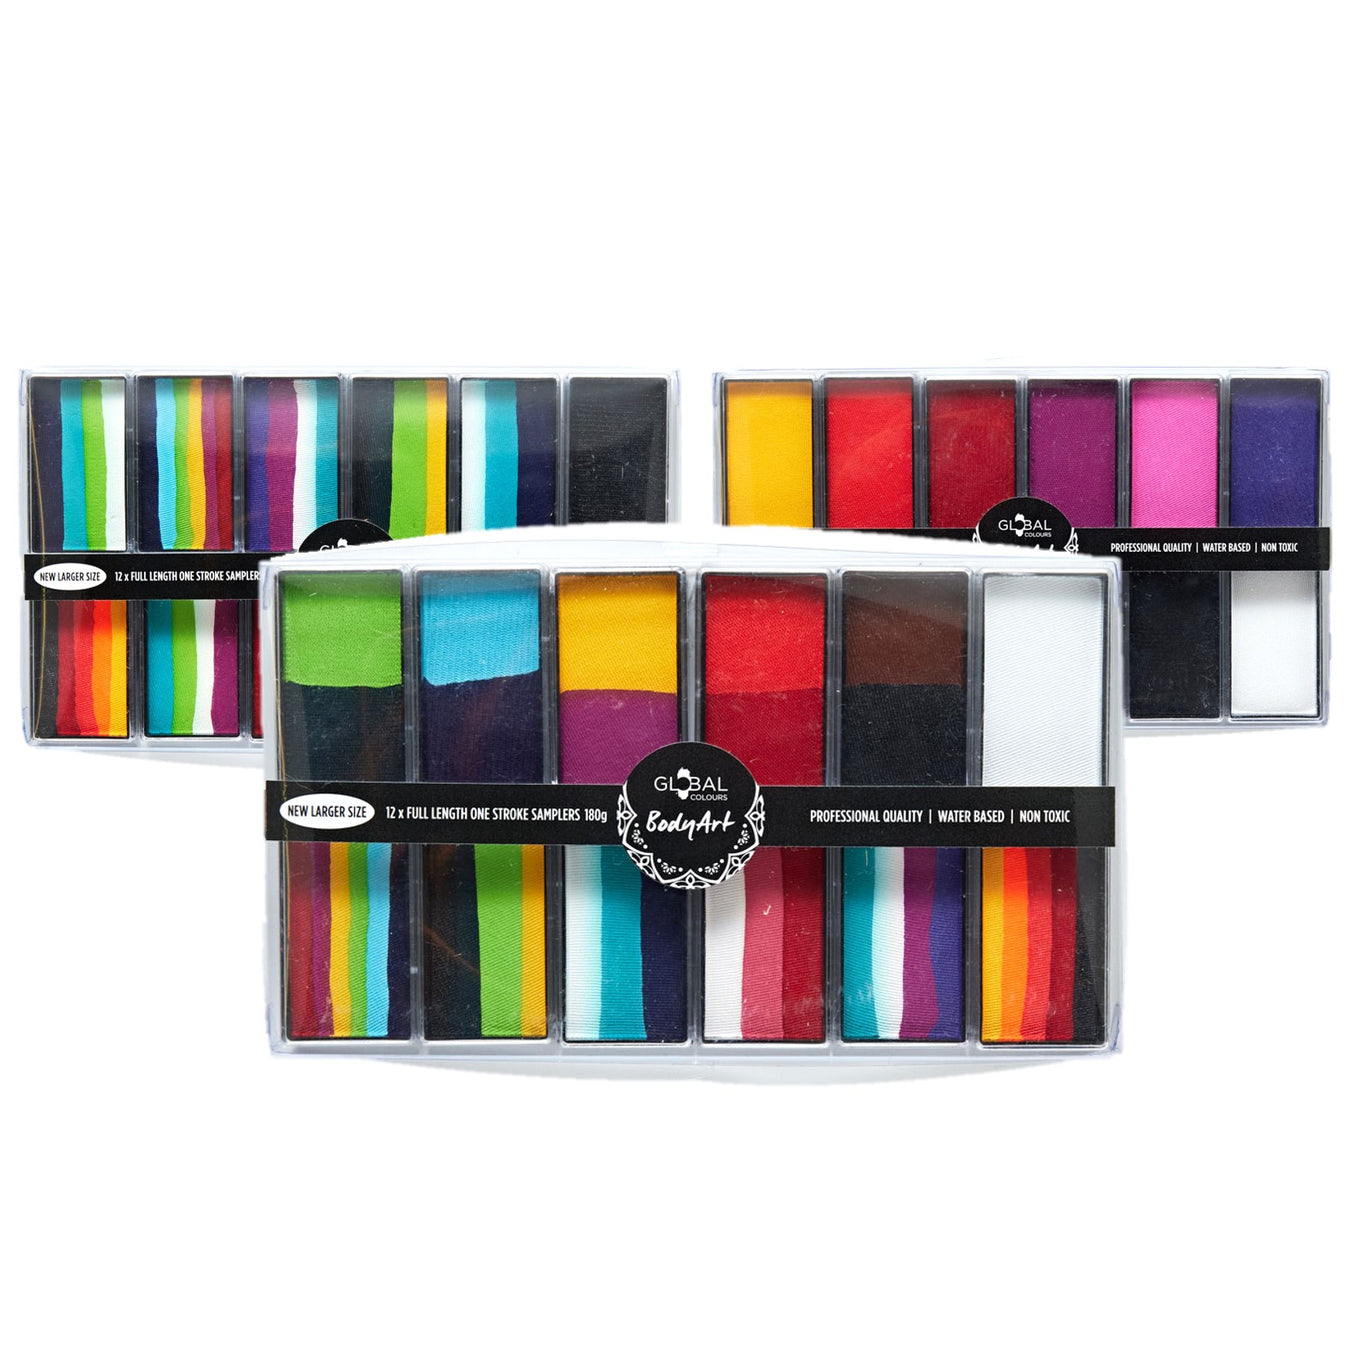 Global Face Painting Palettes